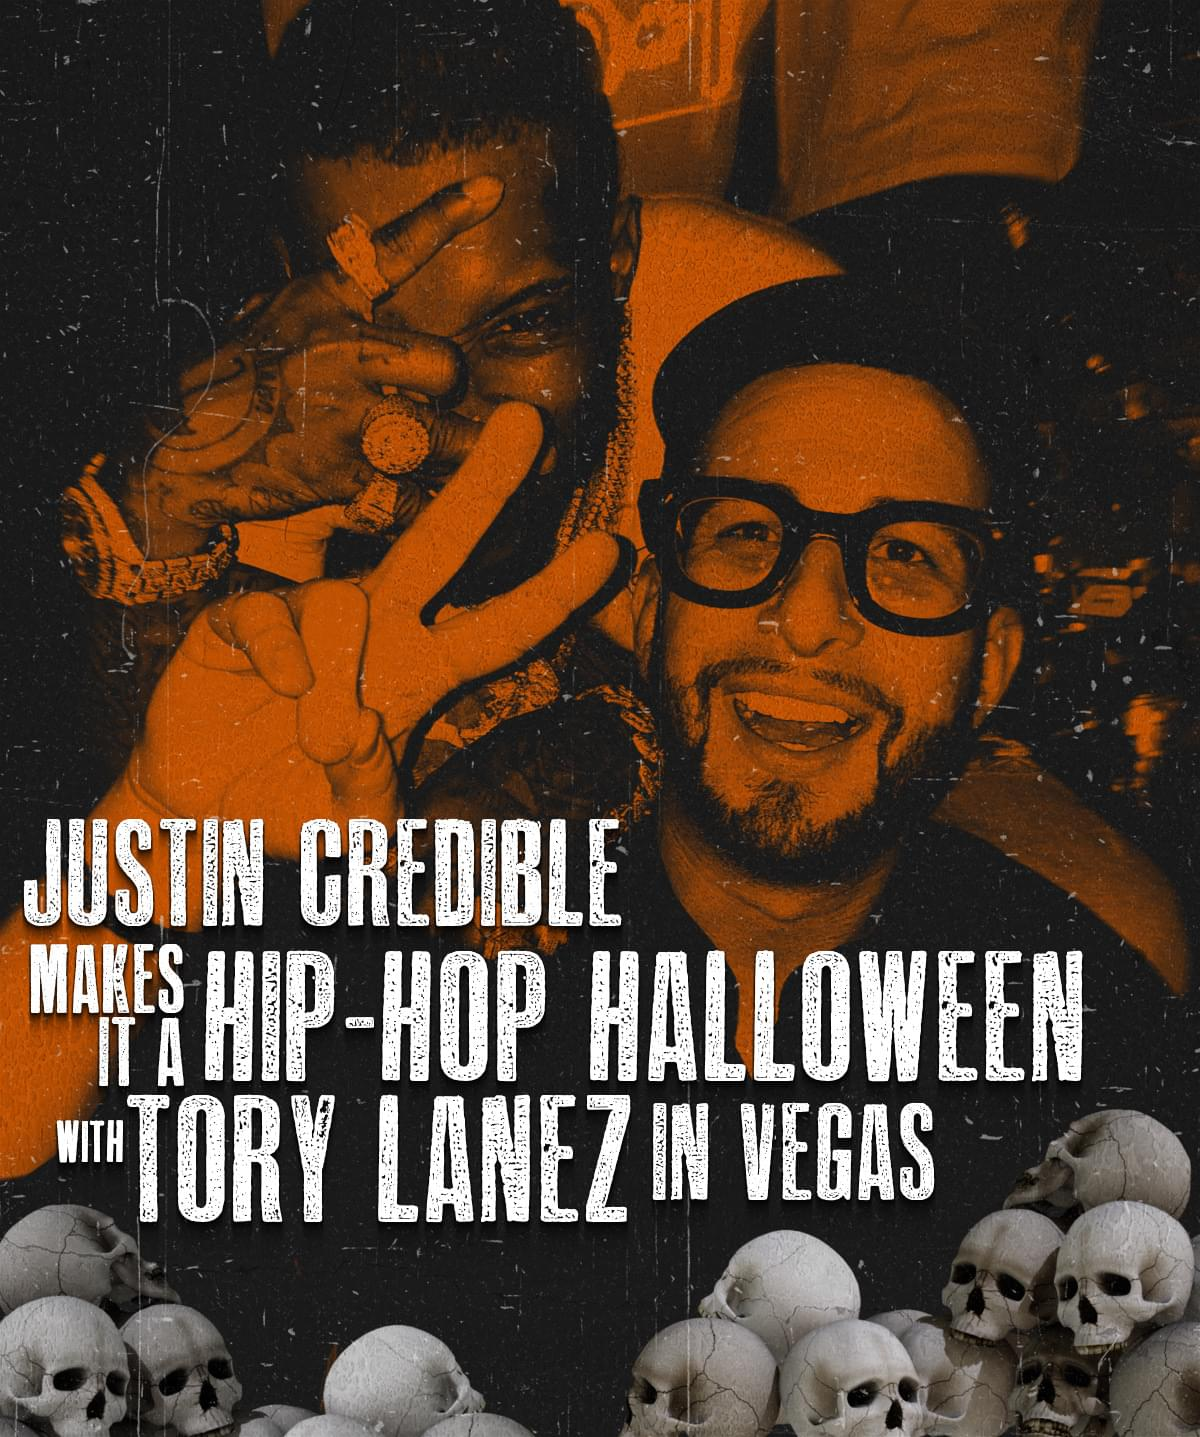 Justin Credible Makes It a Hip Hop Halloween w/ Tory Lanez [WATCH]